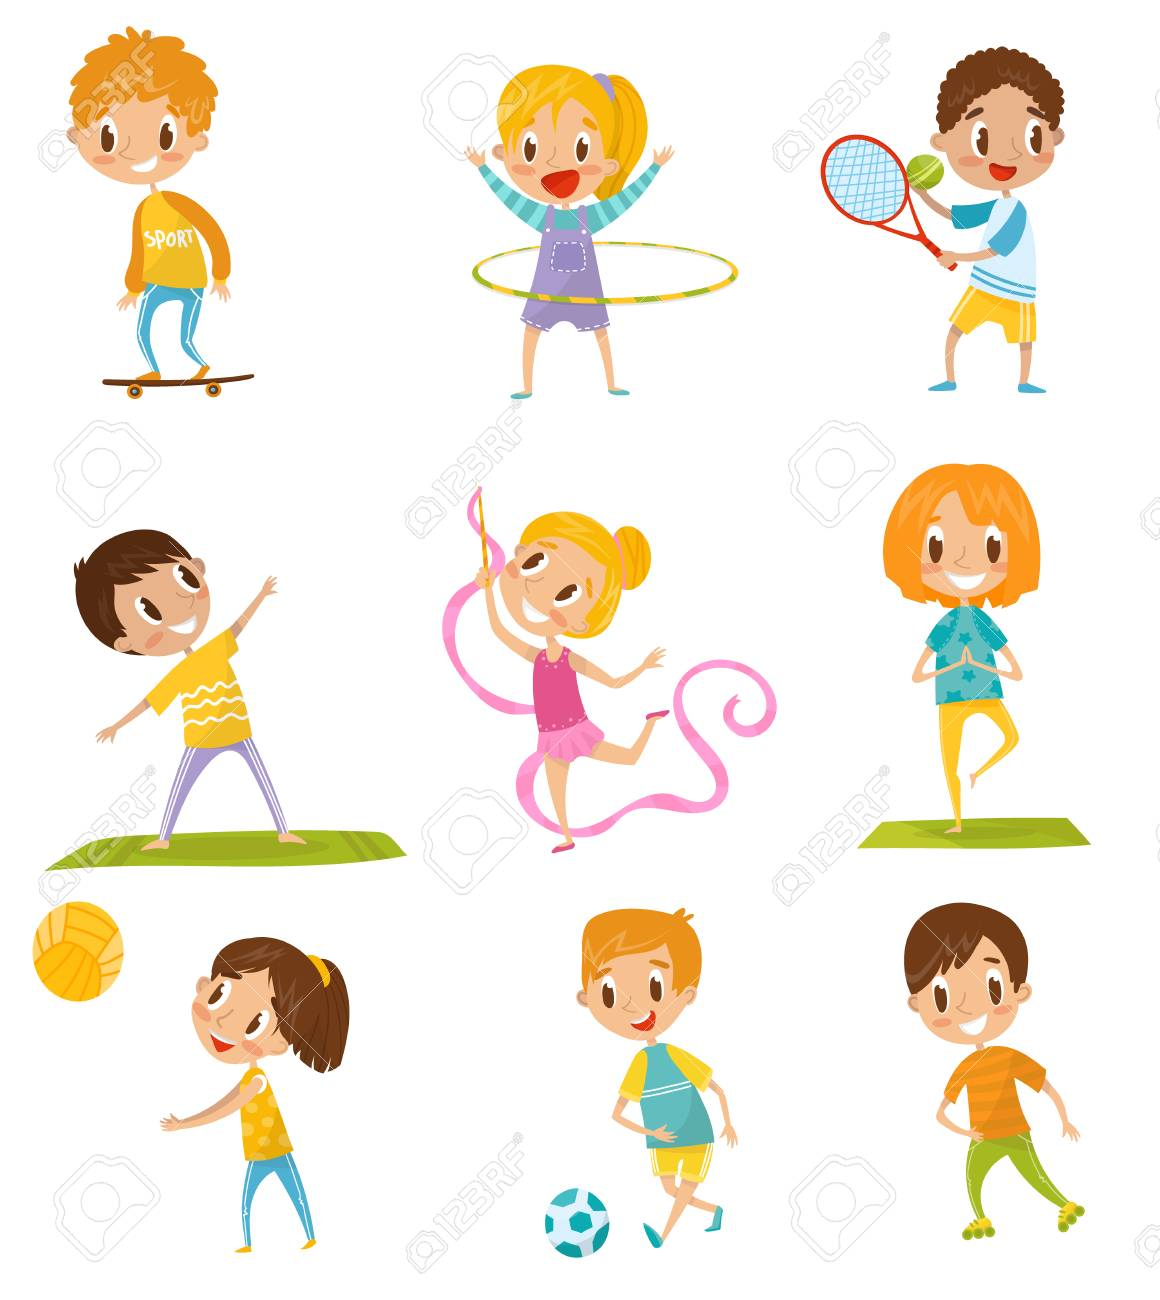 Kids doing different kinds of sports set. Vector Illustrations on a white background - 98125467